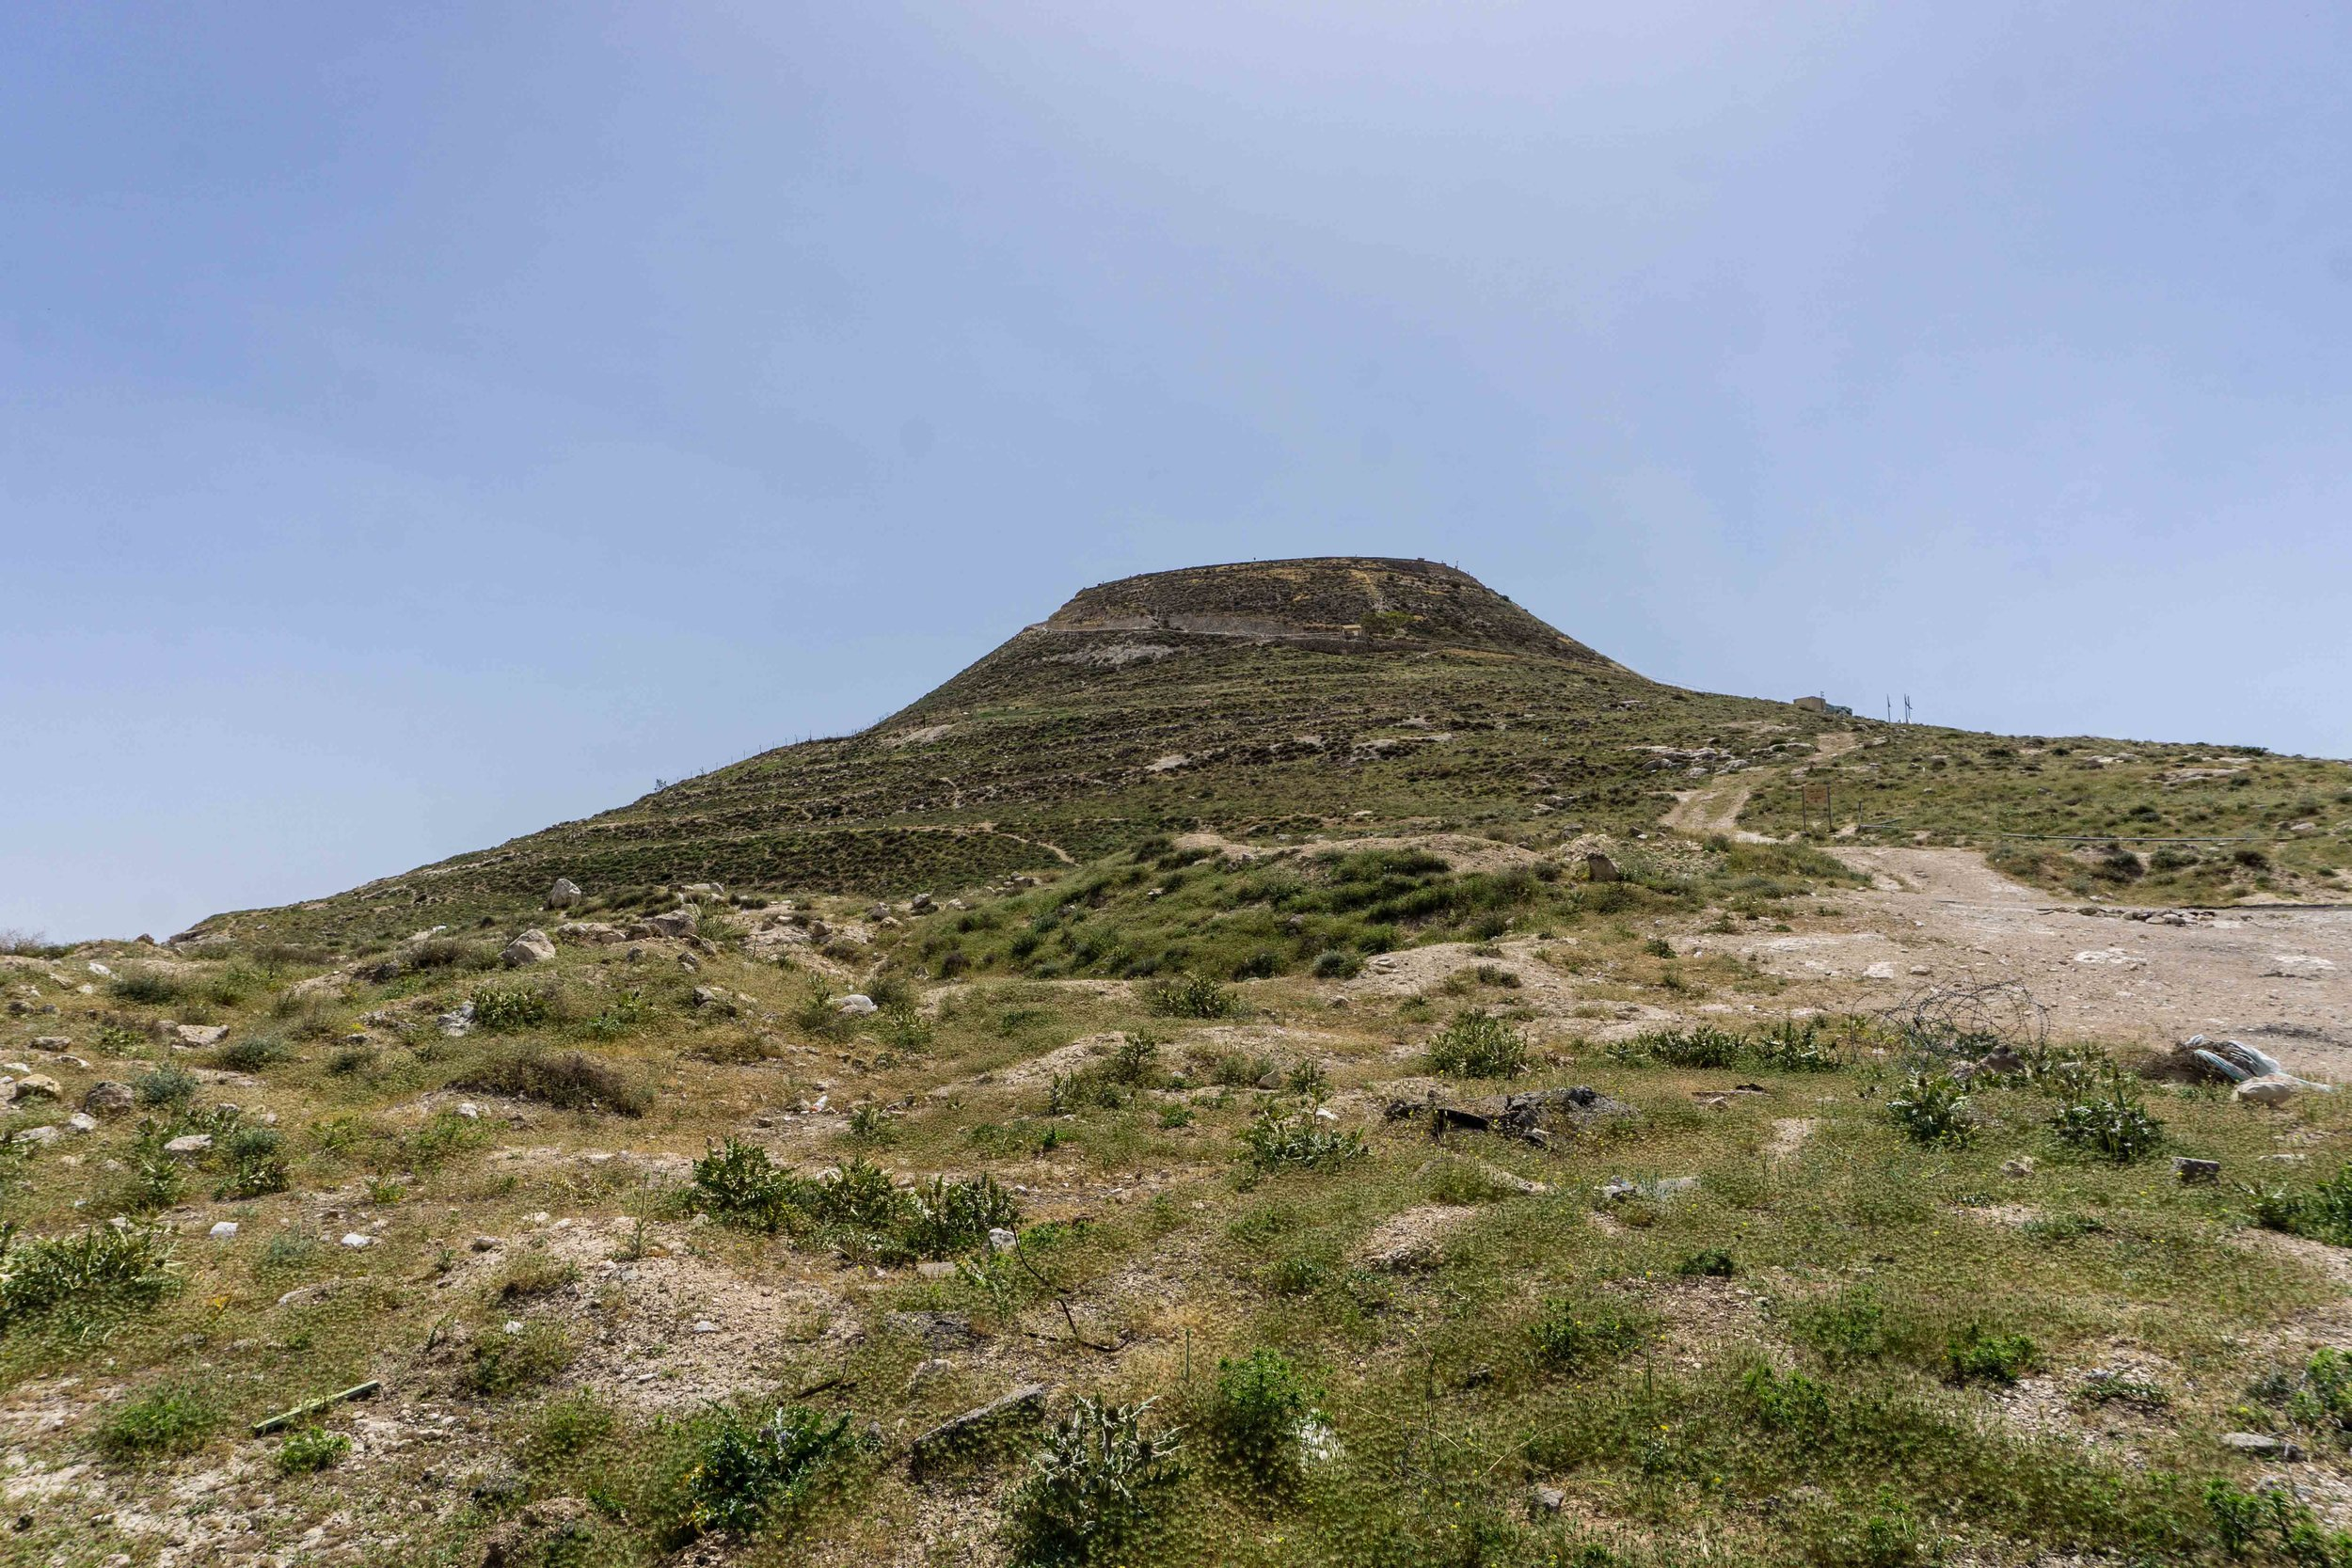 Herod actually had this mountain built, it wasn't like this